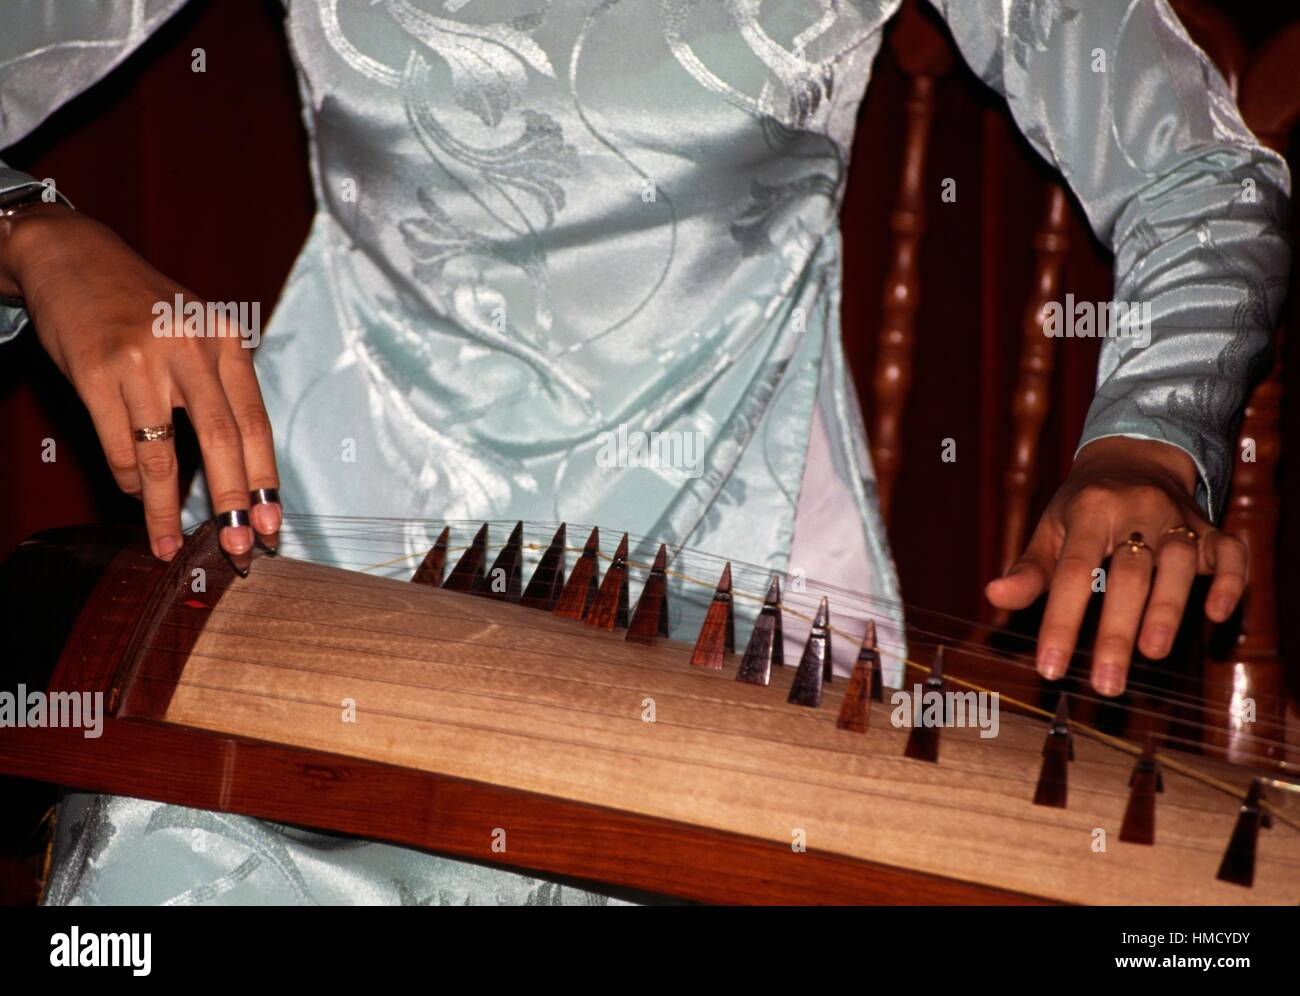 Dan bau, stringed instrument, detail of the hands playing it, Saigon, Vietnam. - Stock Image